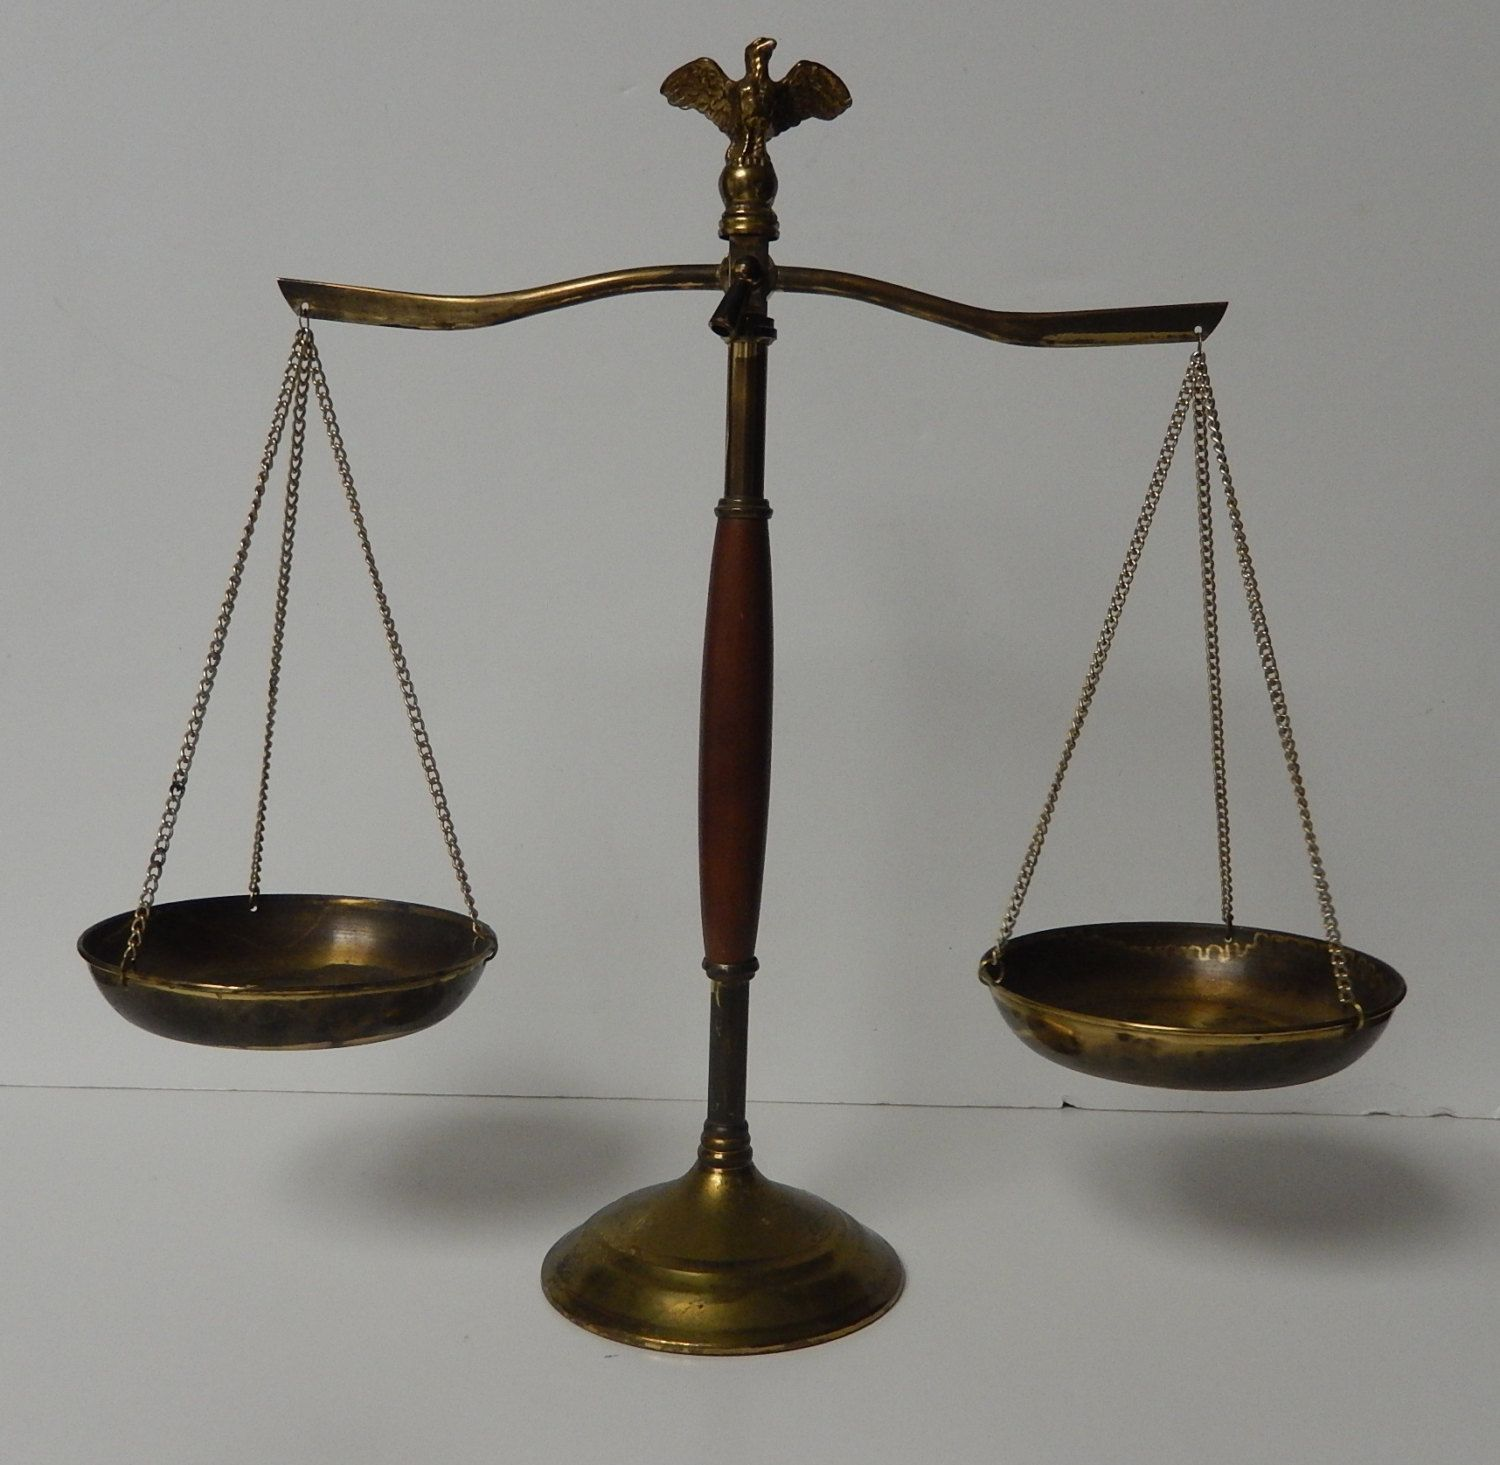 antique scales of justice Vintage scales of Justice Brass And Wood Scales  Balancing Scale  antique scales of justice